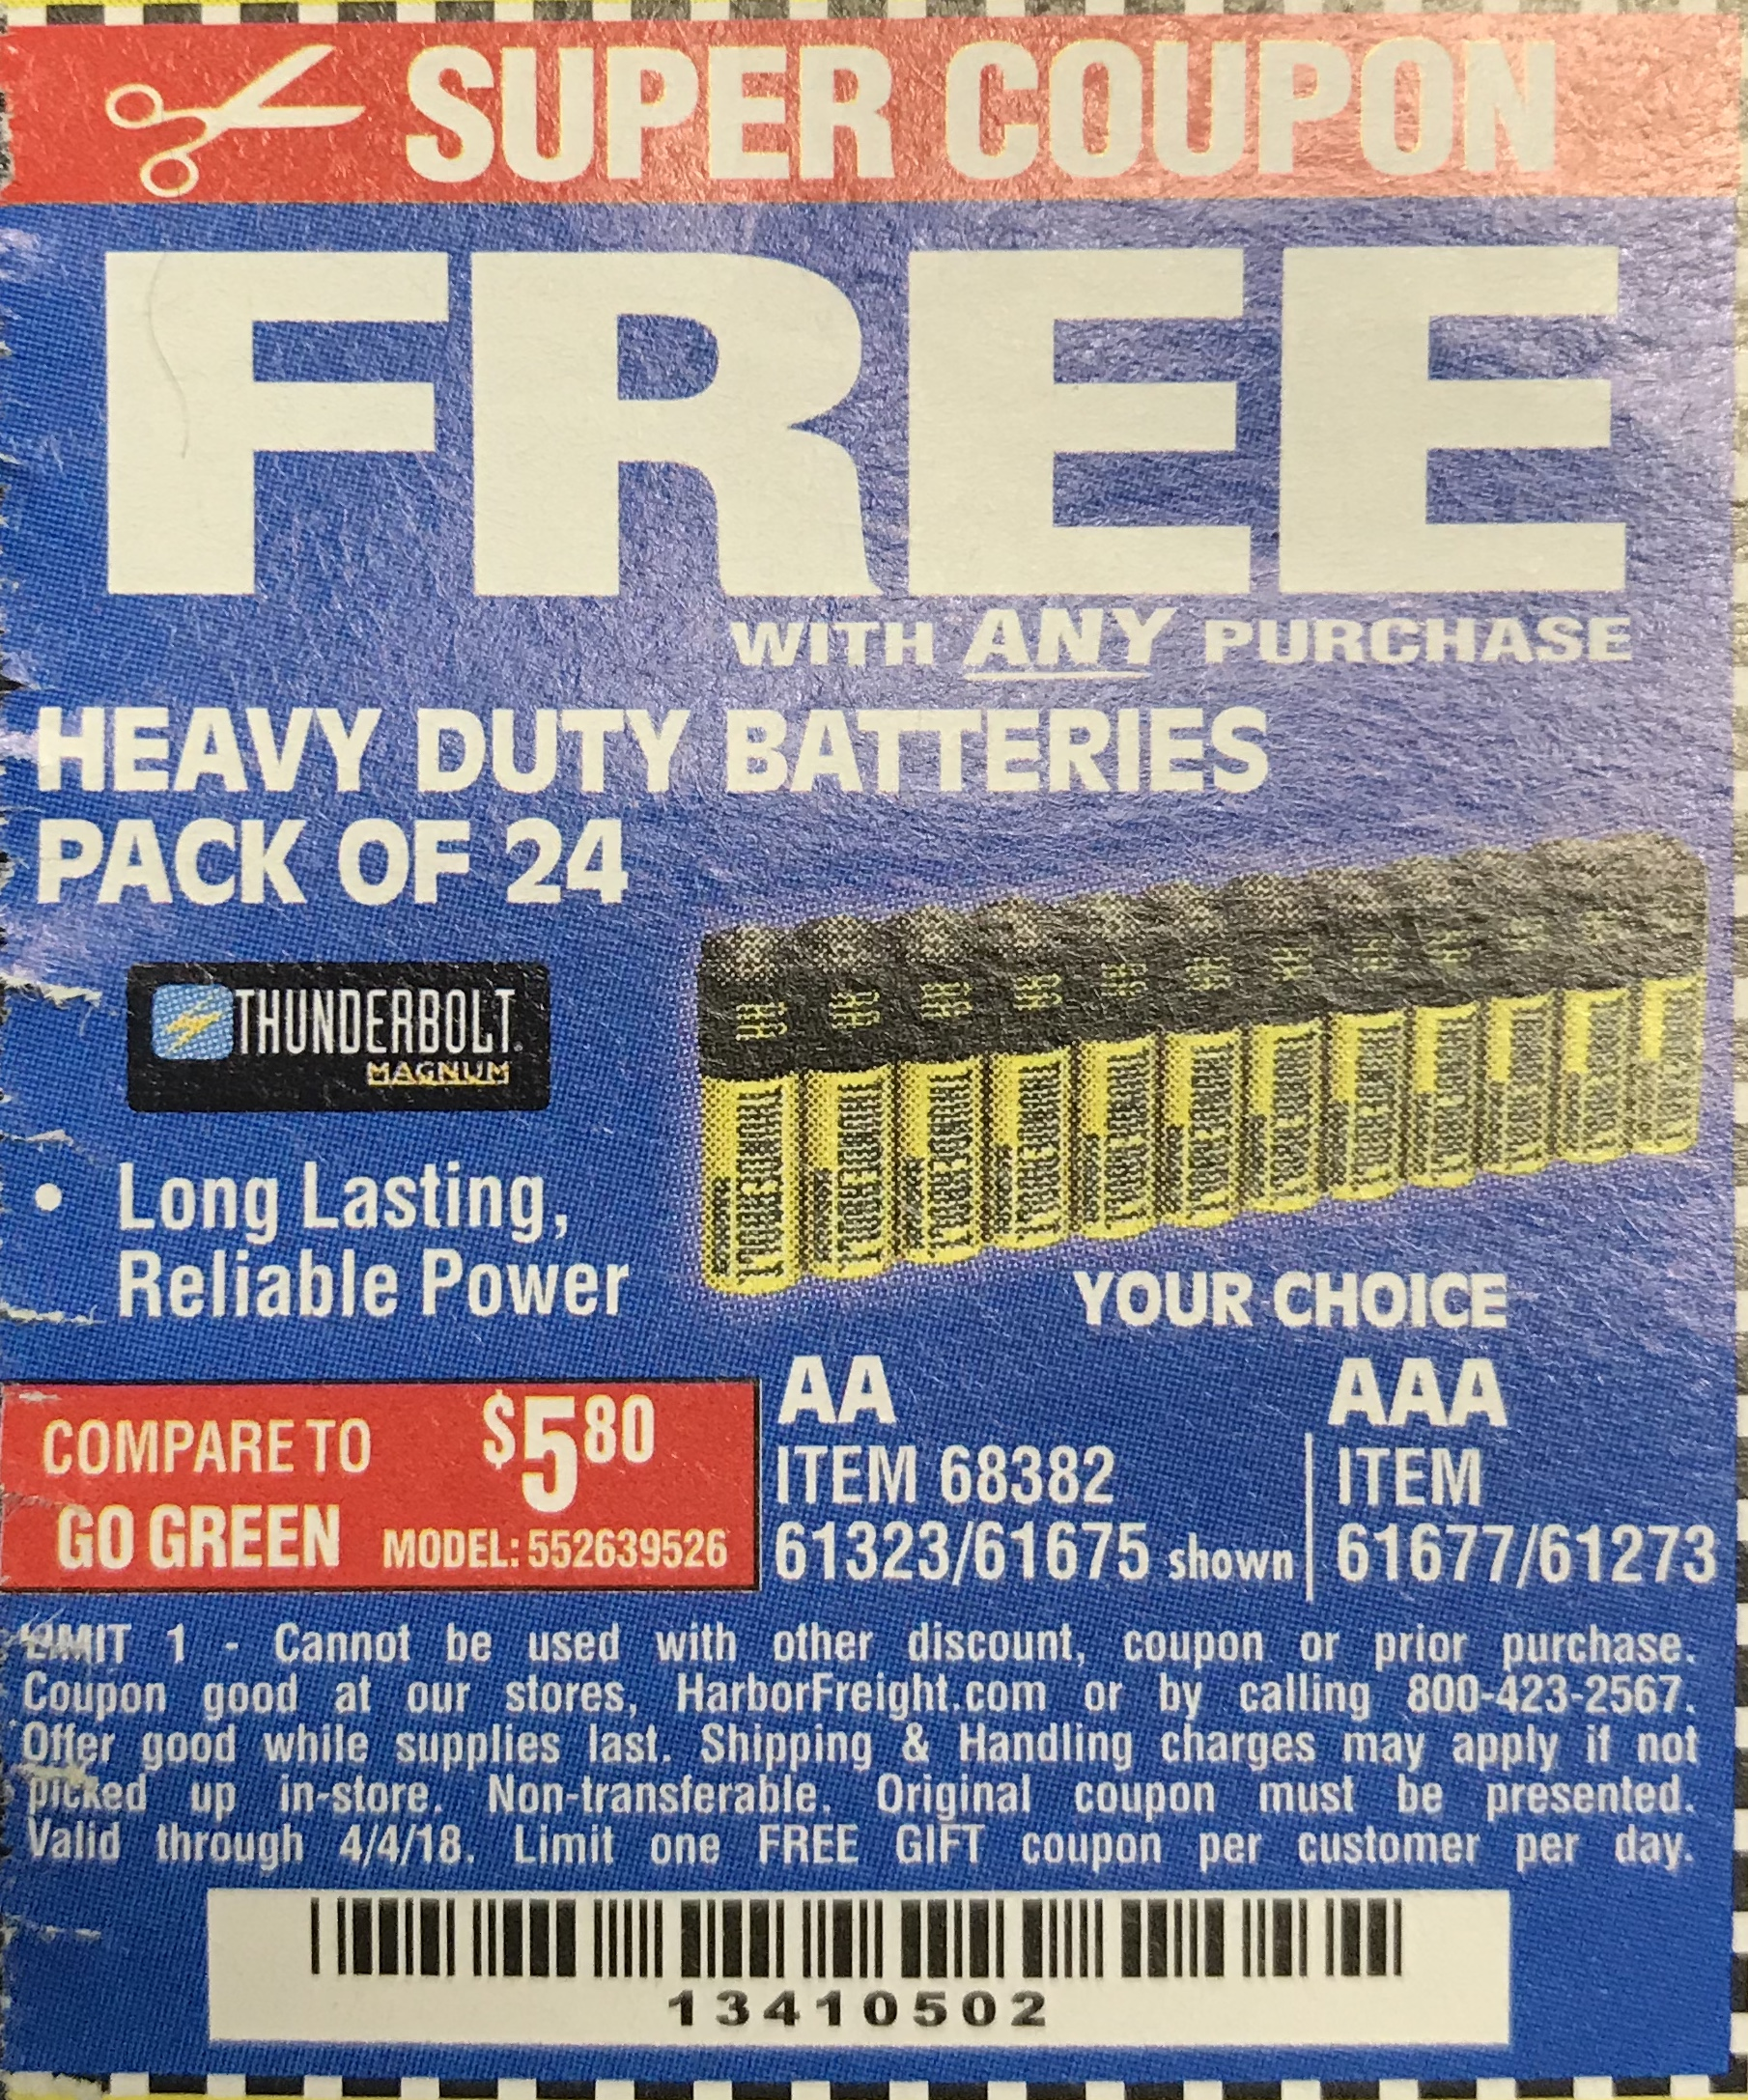 Automotive battery discount coupons